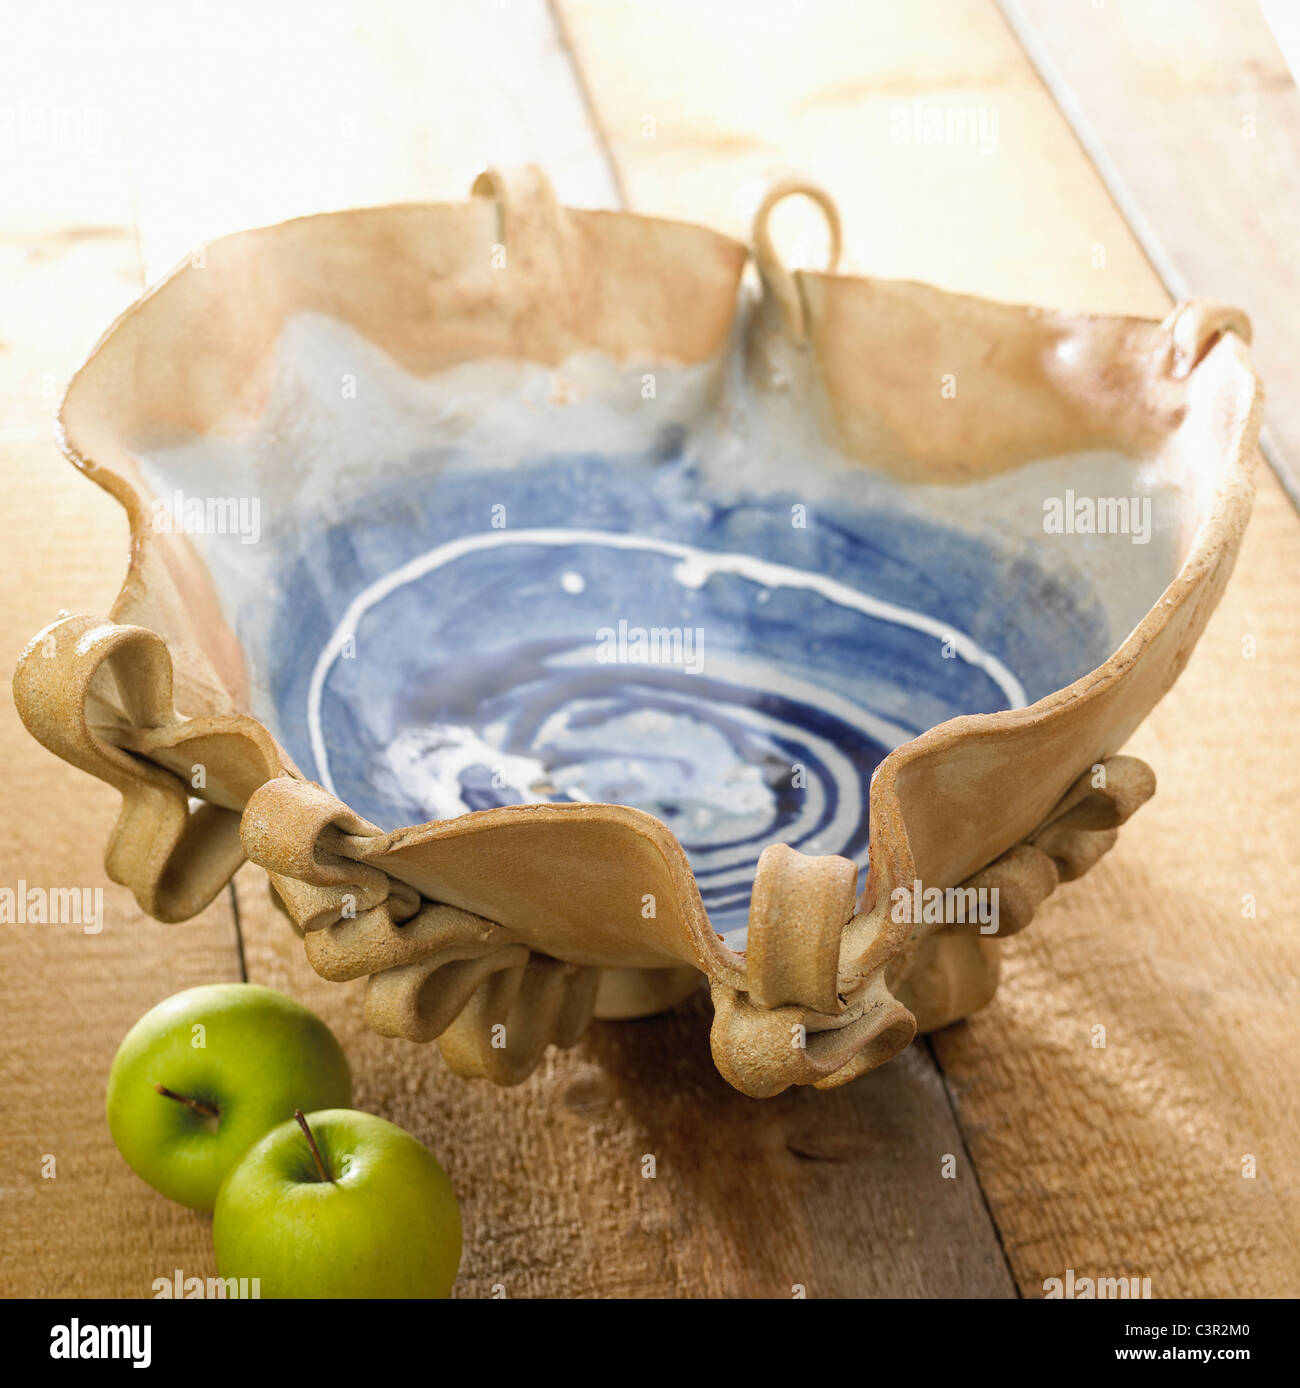 Pottery bowl with granny smith apples - Stock Image